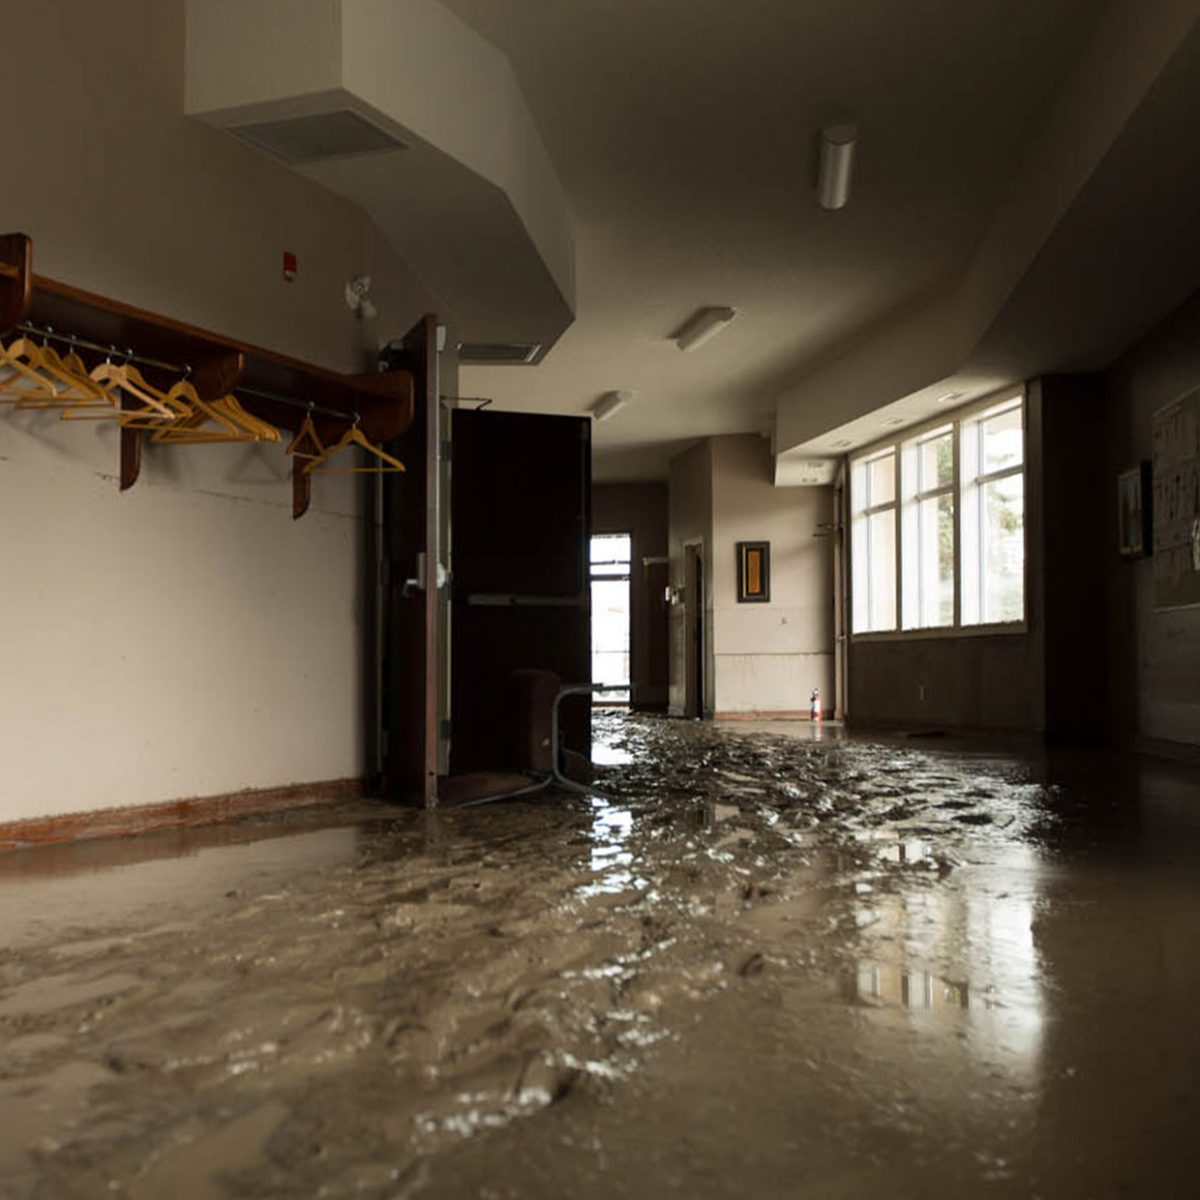 A workplace damaged by flooding.